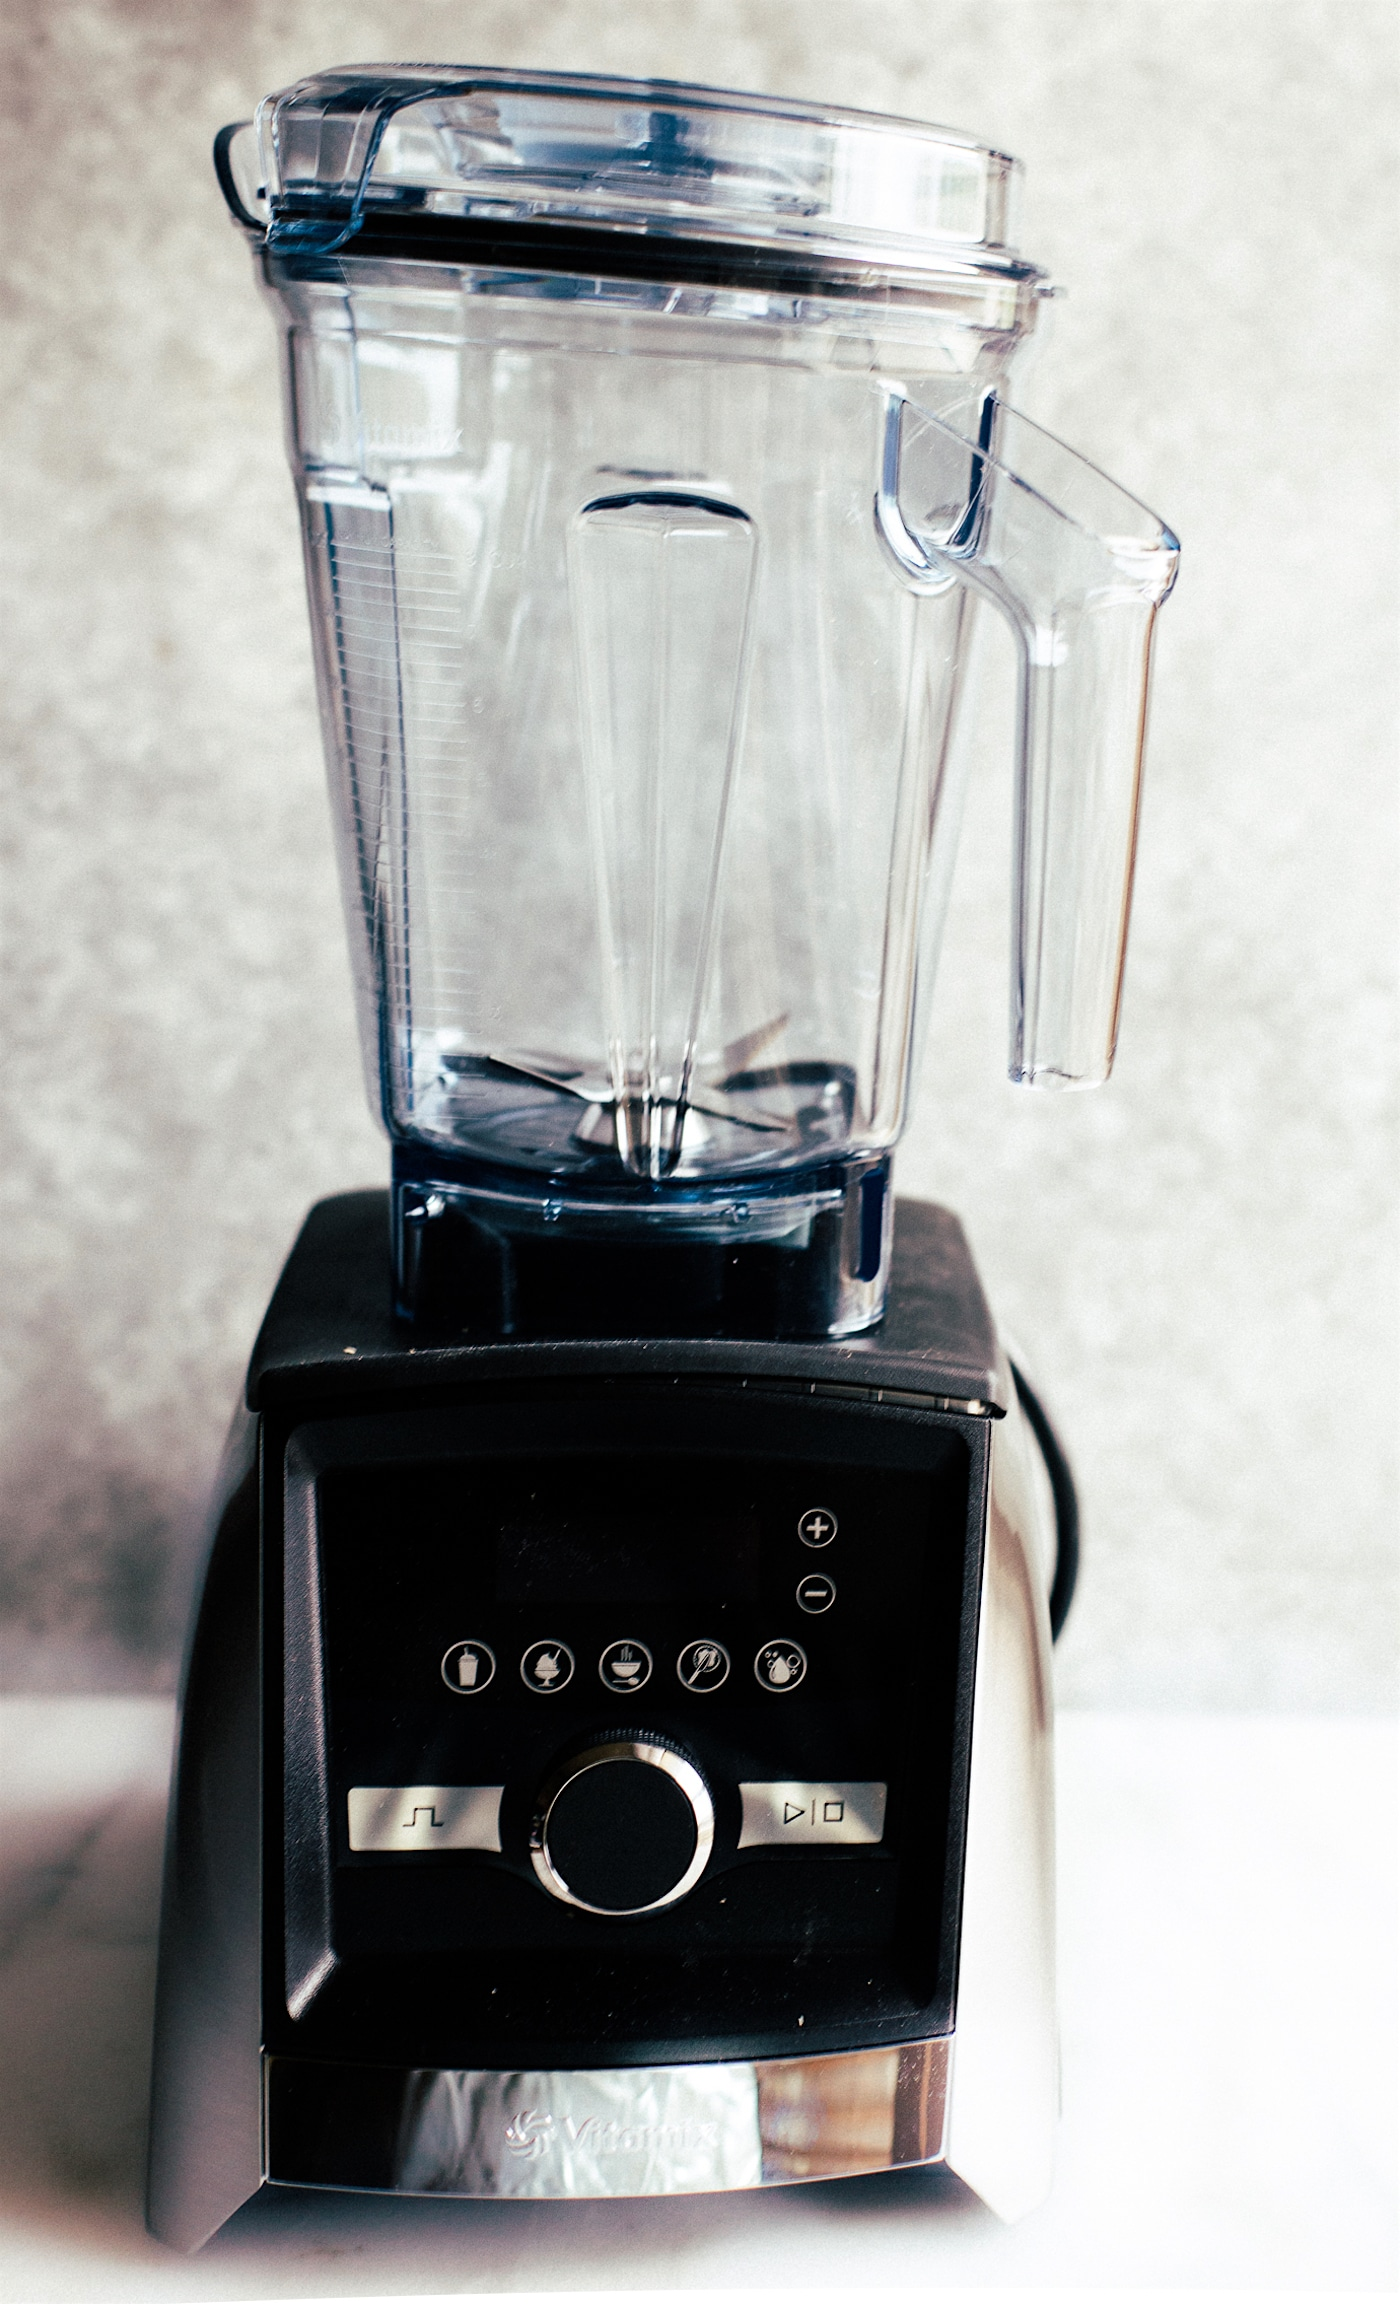 Ascent Series Combining sleek design with modern convenience, the Ascent™ Series offers the first high-performance blenders with built-in timers, wireless connectivity, and a family of containers to accompany you both at home, and on the go.